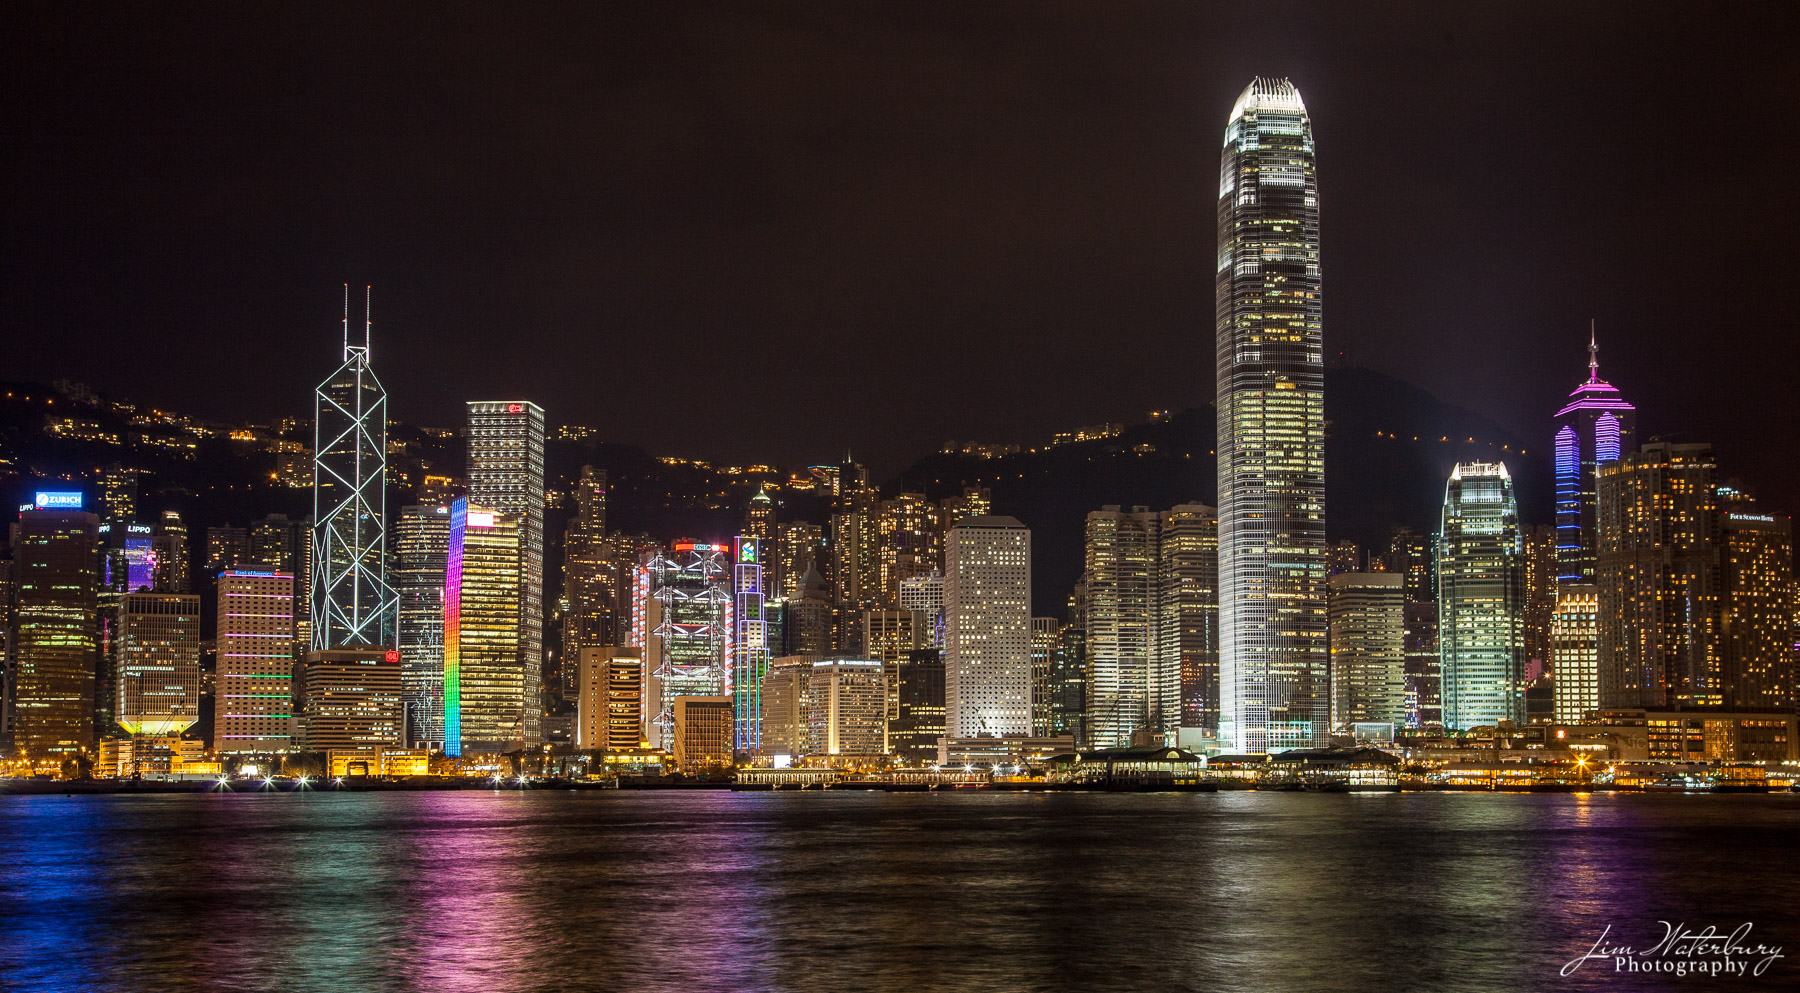 View of the skyscrapers of Hong Kong, illuminated at night, from a boat on Victoria Harbor.